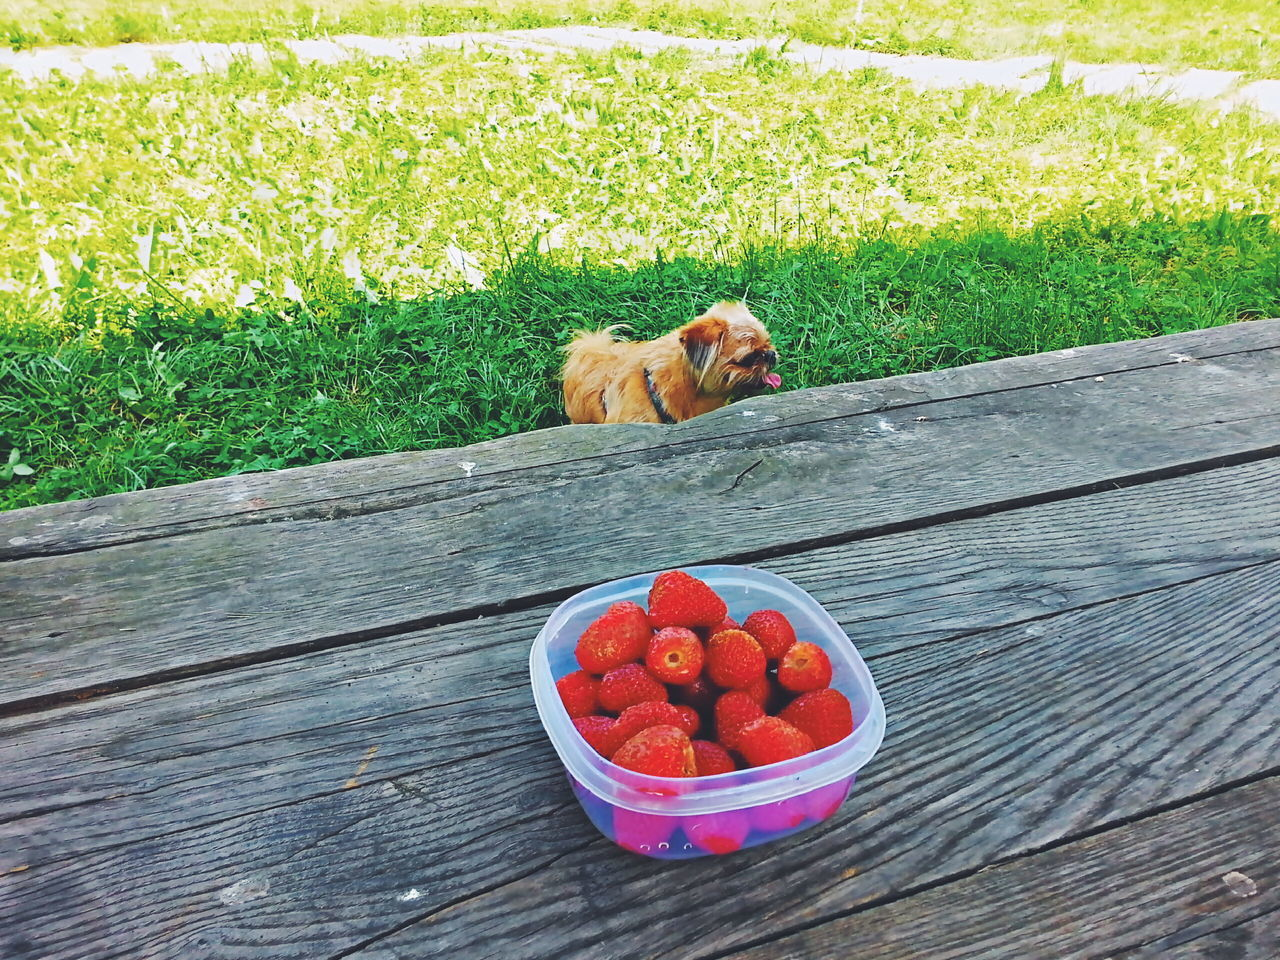 dog, pets, one animal, domestic animals, animal themes, mammal, grass, day, fruit, no people, outdoors, food and drink, red, healthy eating, sitting, growth, food, nature, freshness